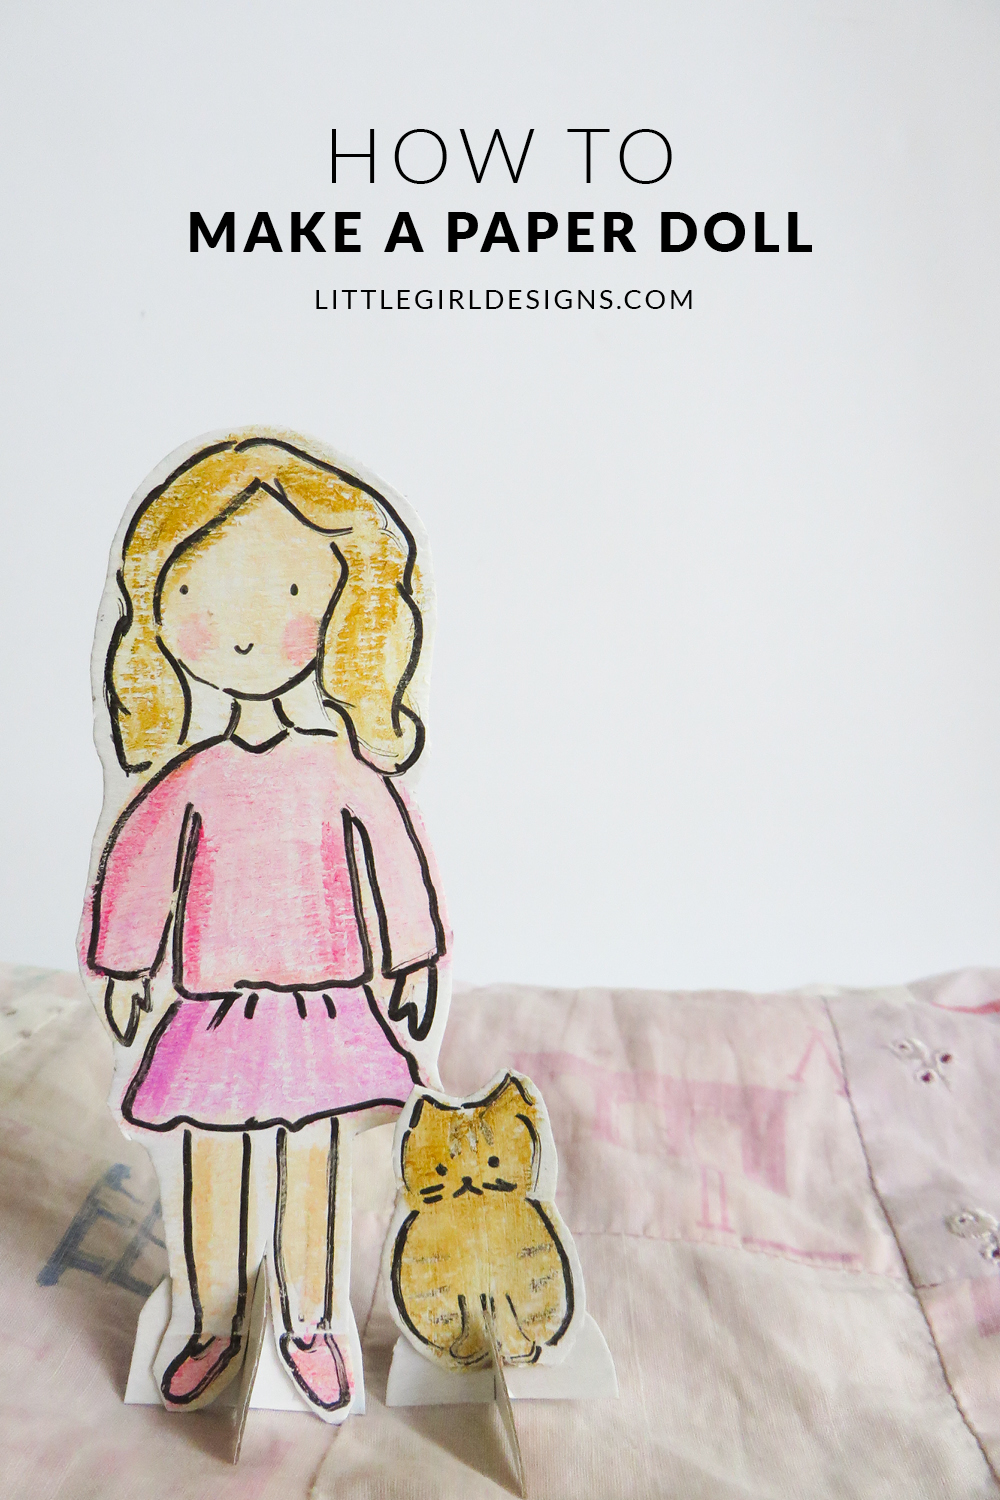 3 Easy Diy Storage Ideas For Small Kitchen: How To Make A Paper Doll